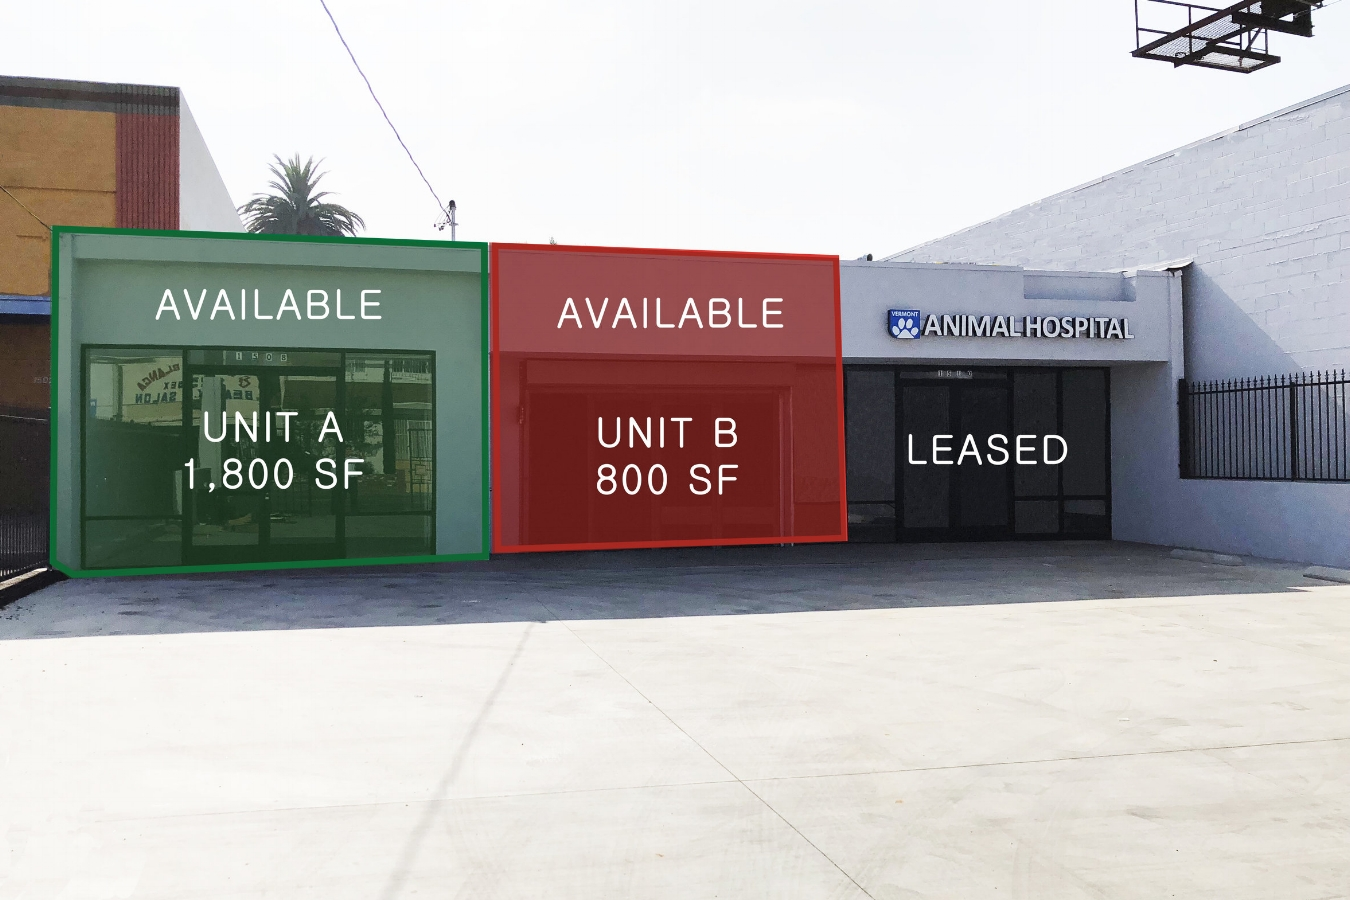 1508-1512 South VERMONT AVEnue, LOS ANGELES, CA 90006 - LEASE RATE: $ 2.50/ SF/ +NNNGLA: +/- 4,767 SF- 2 SPACES (UNIT A / UNIT B) AVAILABLE- Both units include new restrooms and AC systems!